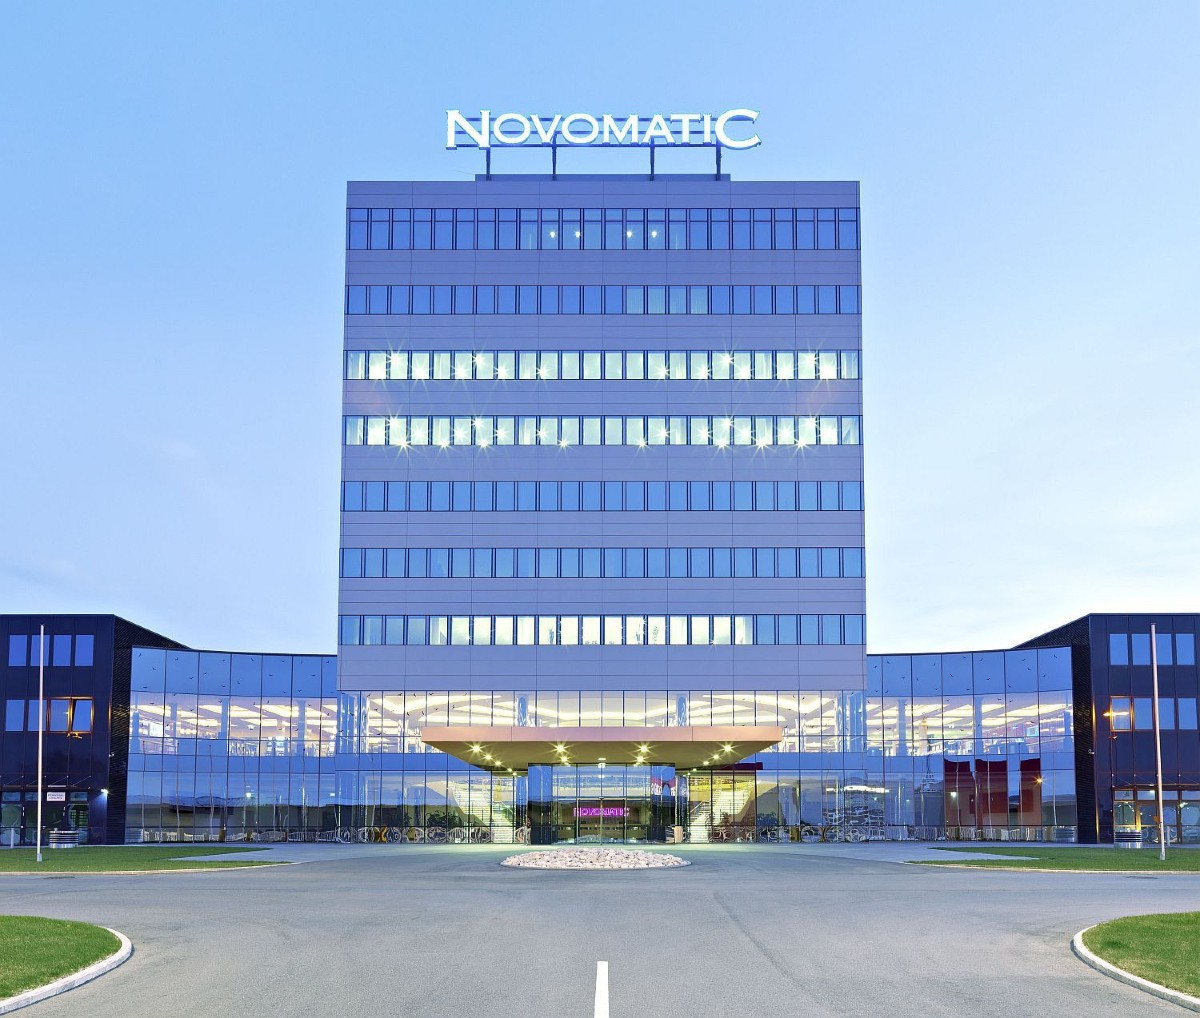 casinos austria - novomatic